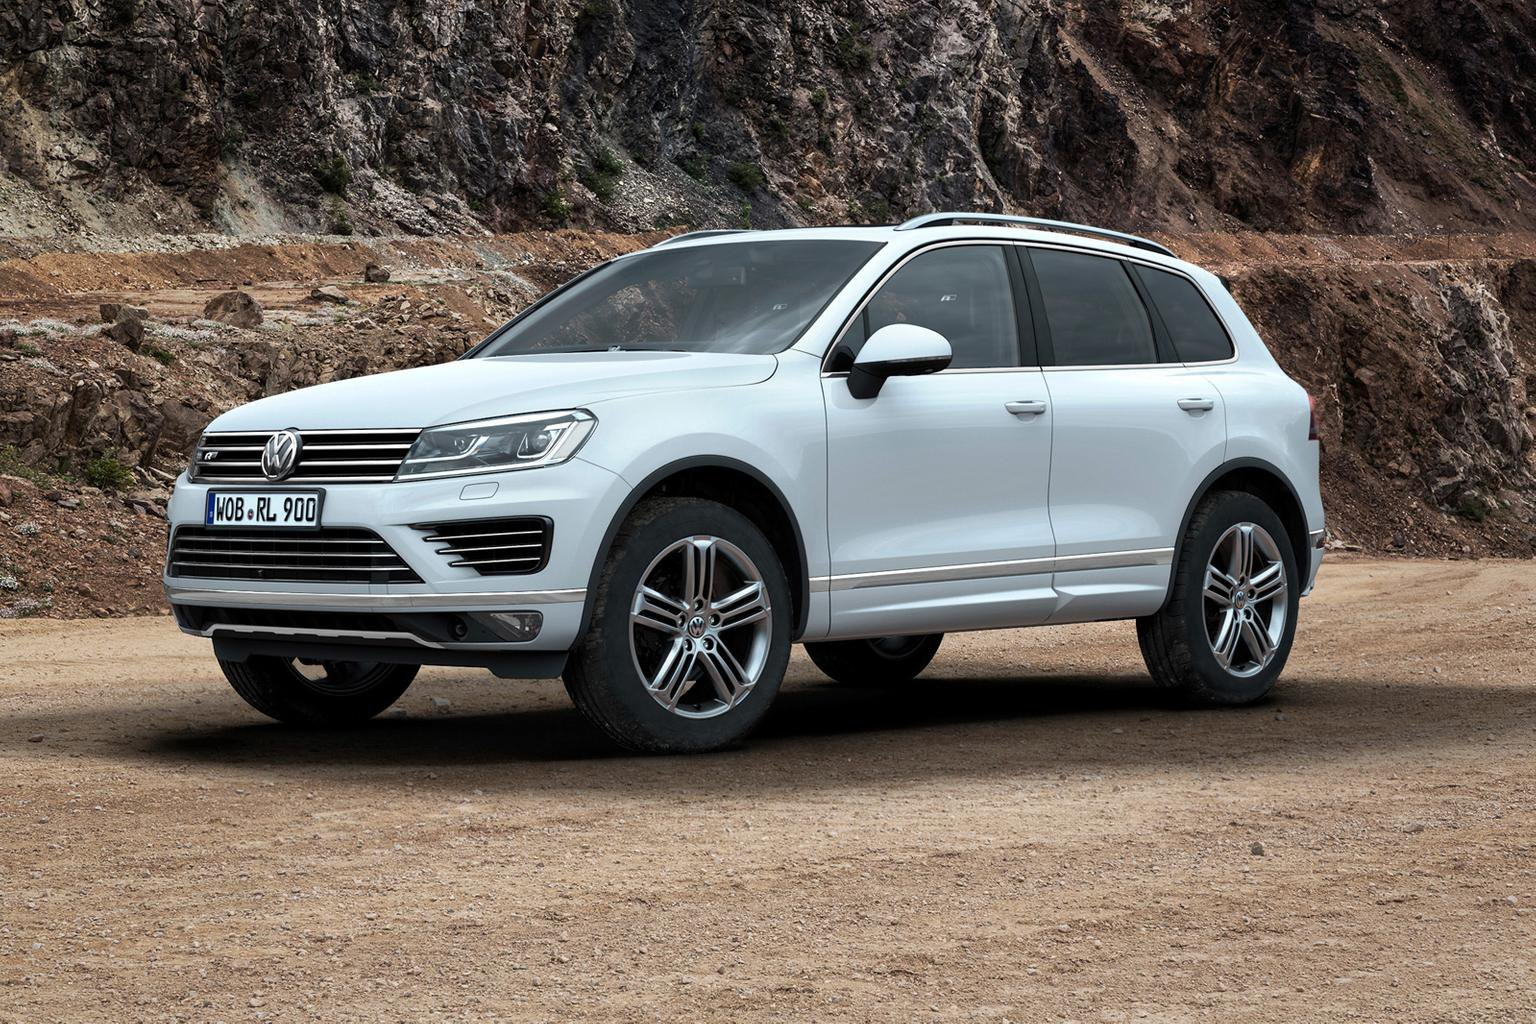 2015 Volkswagen Touareg: full pricing and specifications